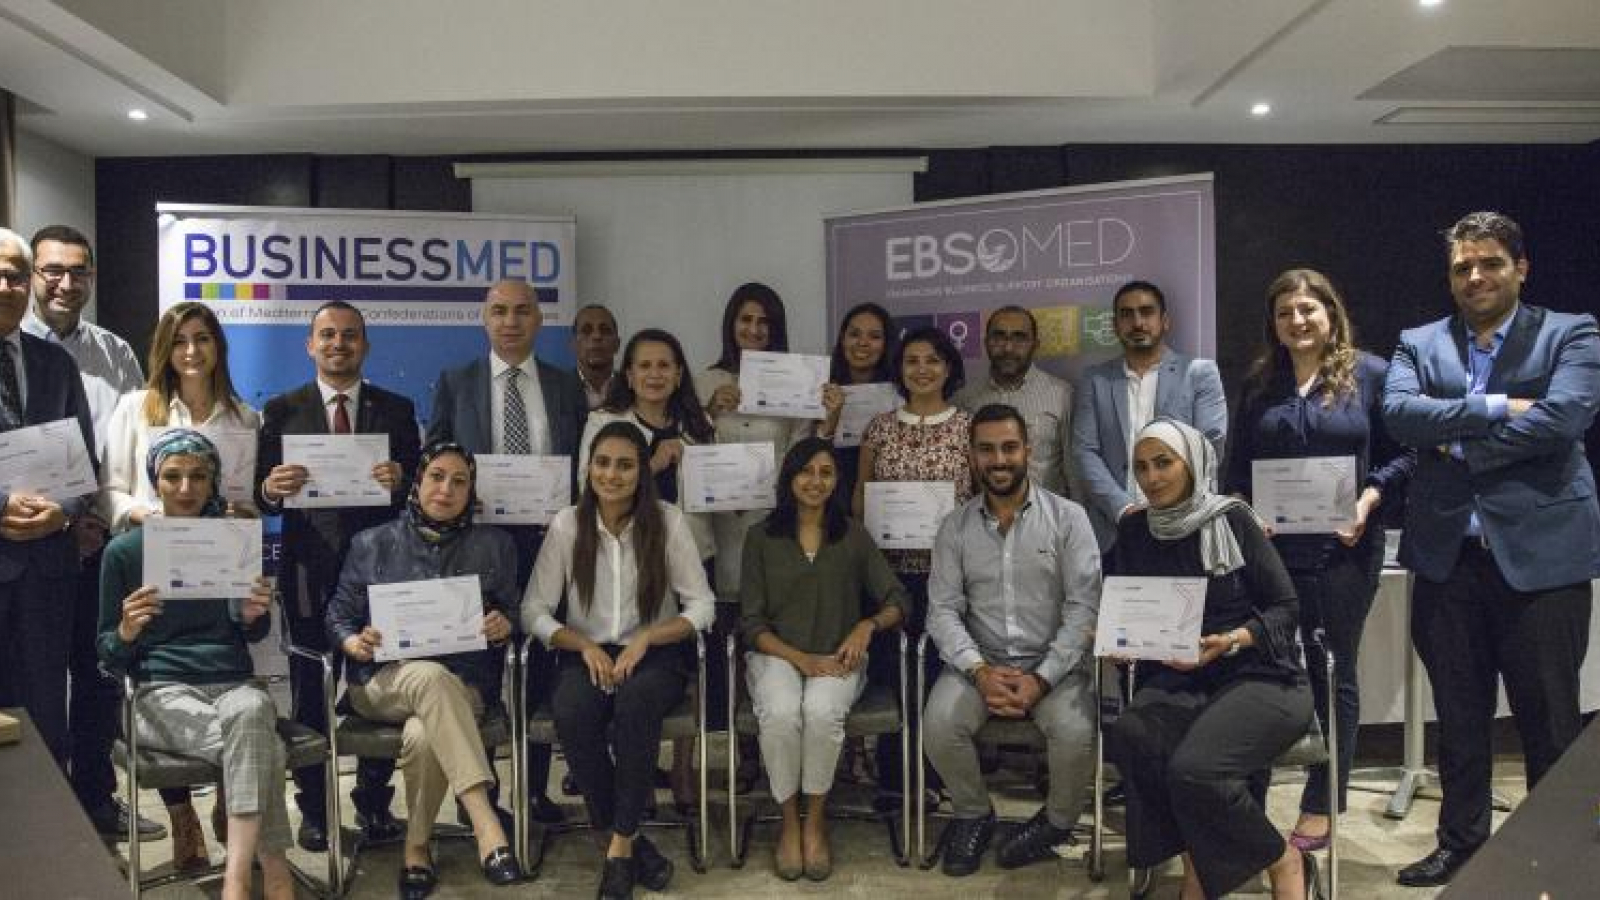 EU-funded EBSOMED provided training on project development and management to Mediterranean Business Support Organisations